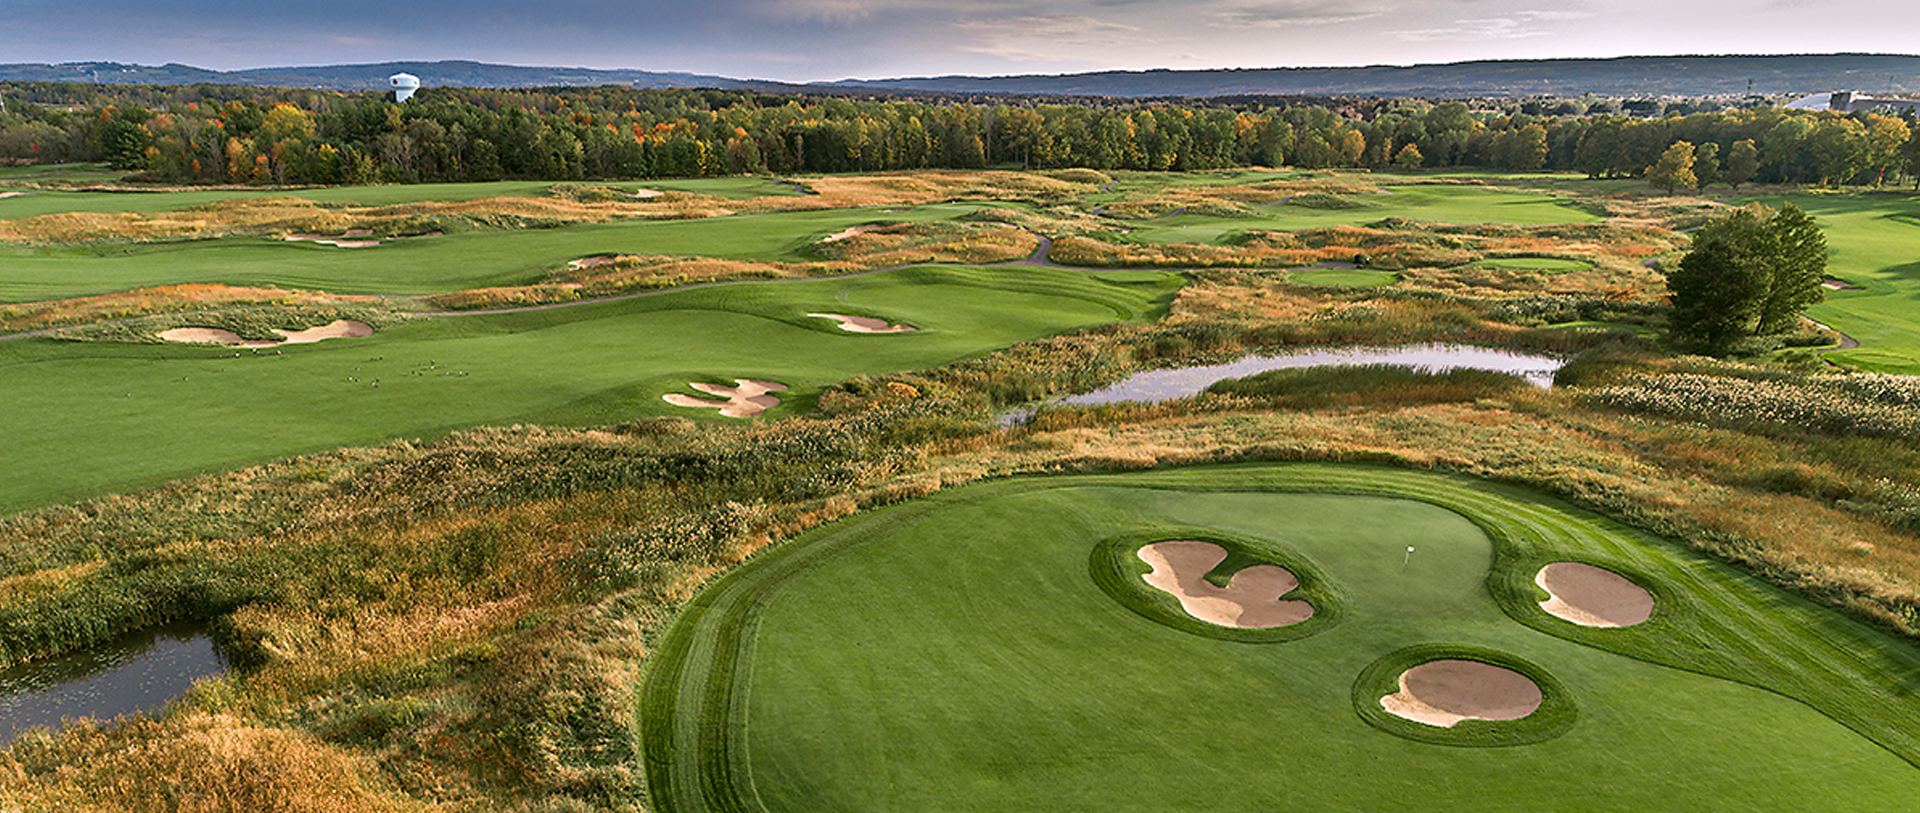 Among Best Golf Courses in the Northeast